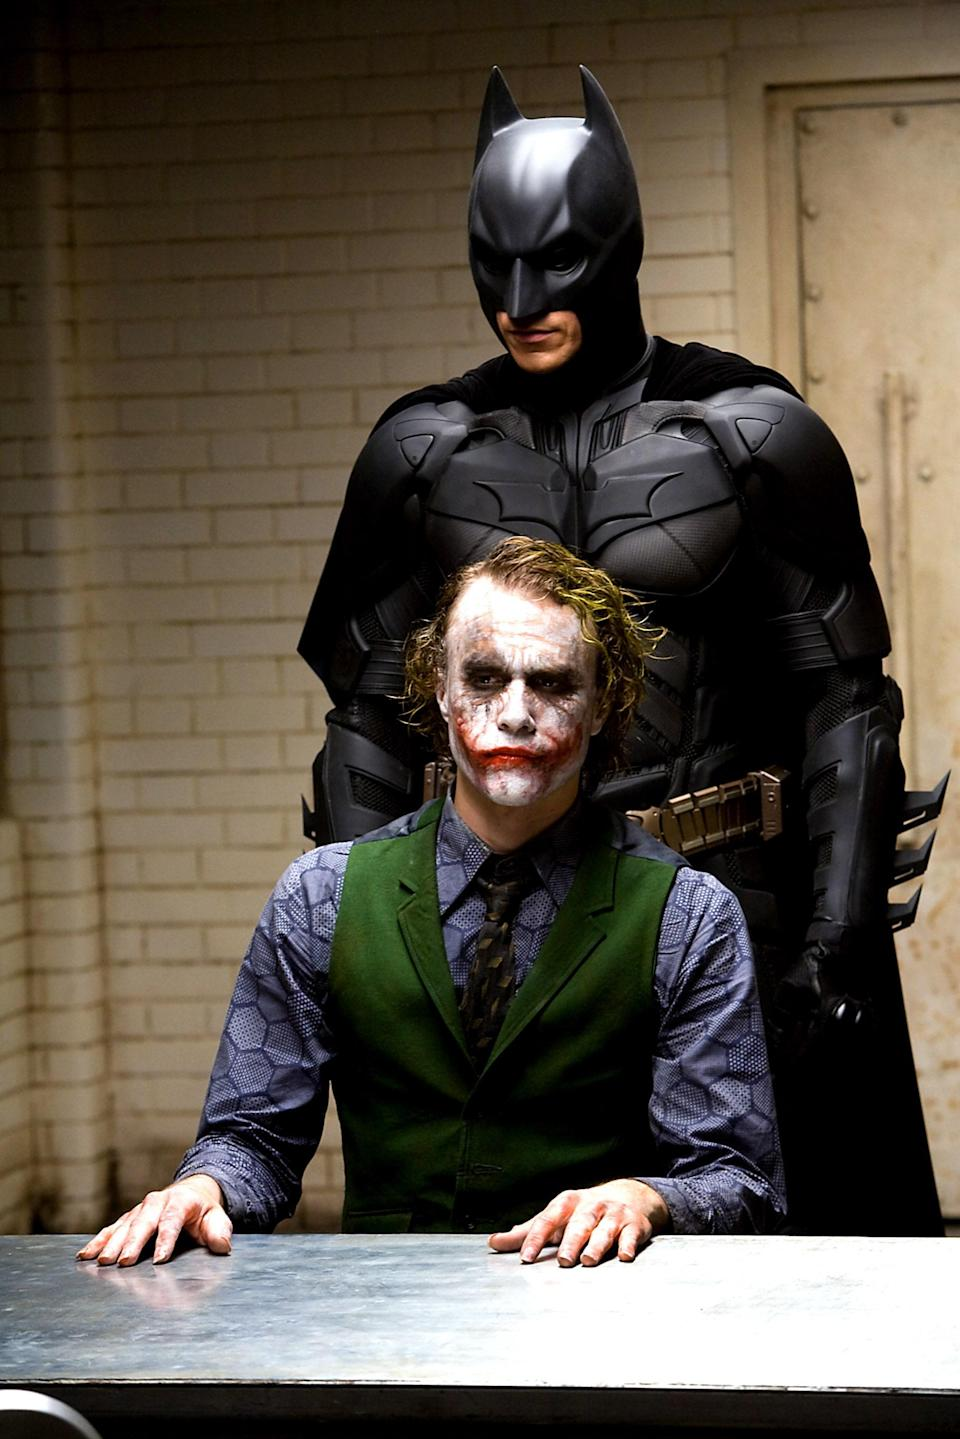 Heath Ledger and Christian Bale in The Dark Knight, 2008.